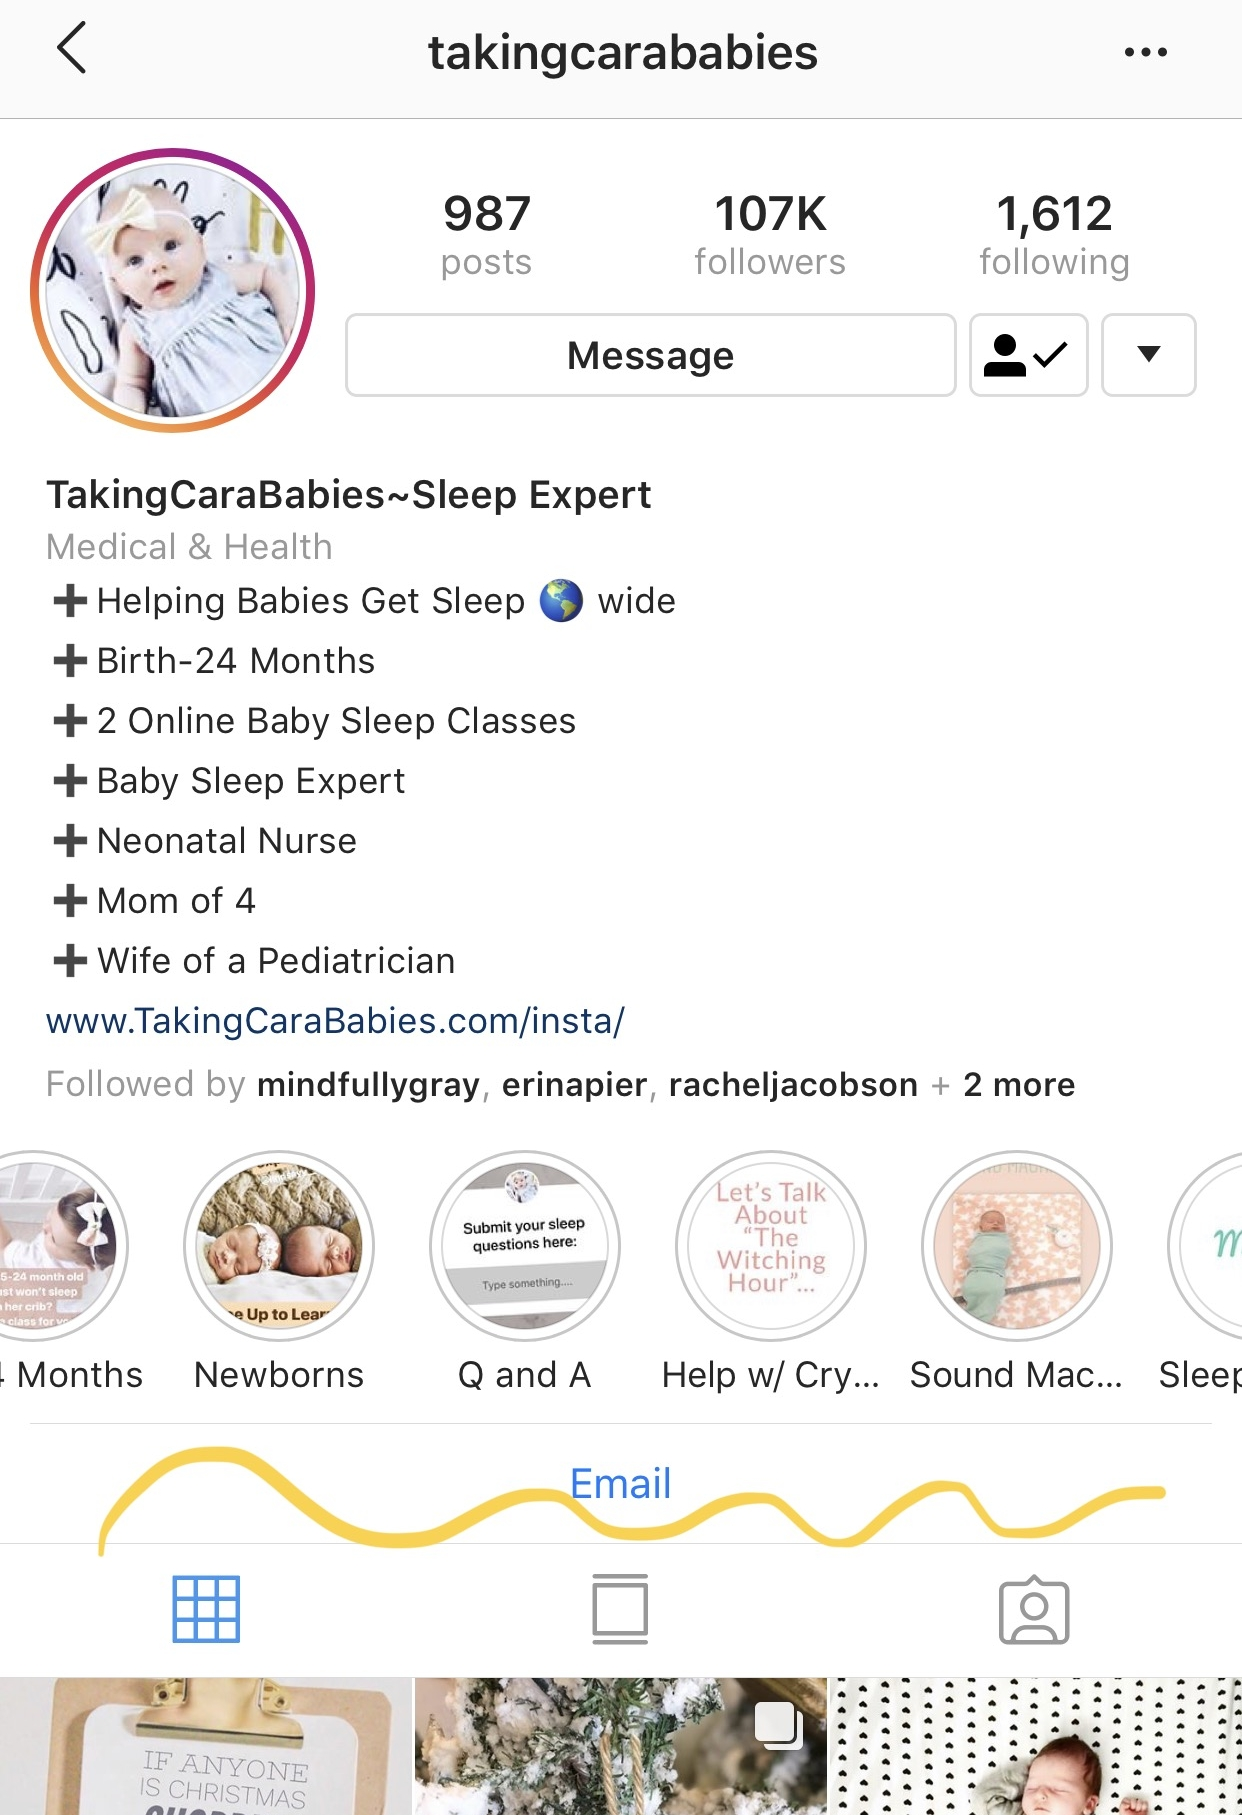 Sleep Tips! - Since Sophia was our first and we had zero experience with baby sleep, every night ended up being a struggle of trying to figure out how to get her to stay asleep or get her back to sleep, and actually, I would really recommend a baby sleep class for new parents! I follow TakingCaraBabies on Instagram and really wish I would have known about her baby sleep classes earlier on and actually taken one. Instead, we did a lot of trial and error, read different books and talked to a lot of parents, until we finally decided on sleep training when Sophia was older, around 5 months, and it was NOT a smooth ride. I think sleep training will need to be a whole separate post on its own… but take a look at her Instagram stories for some tips to help you out!